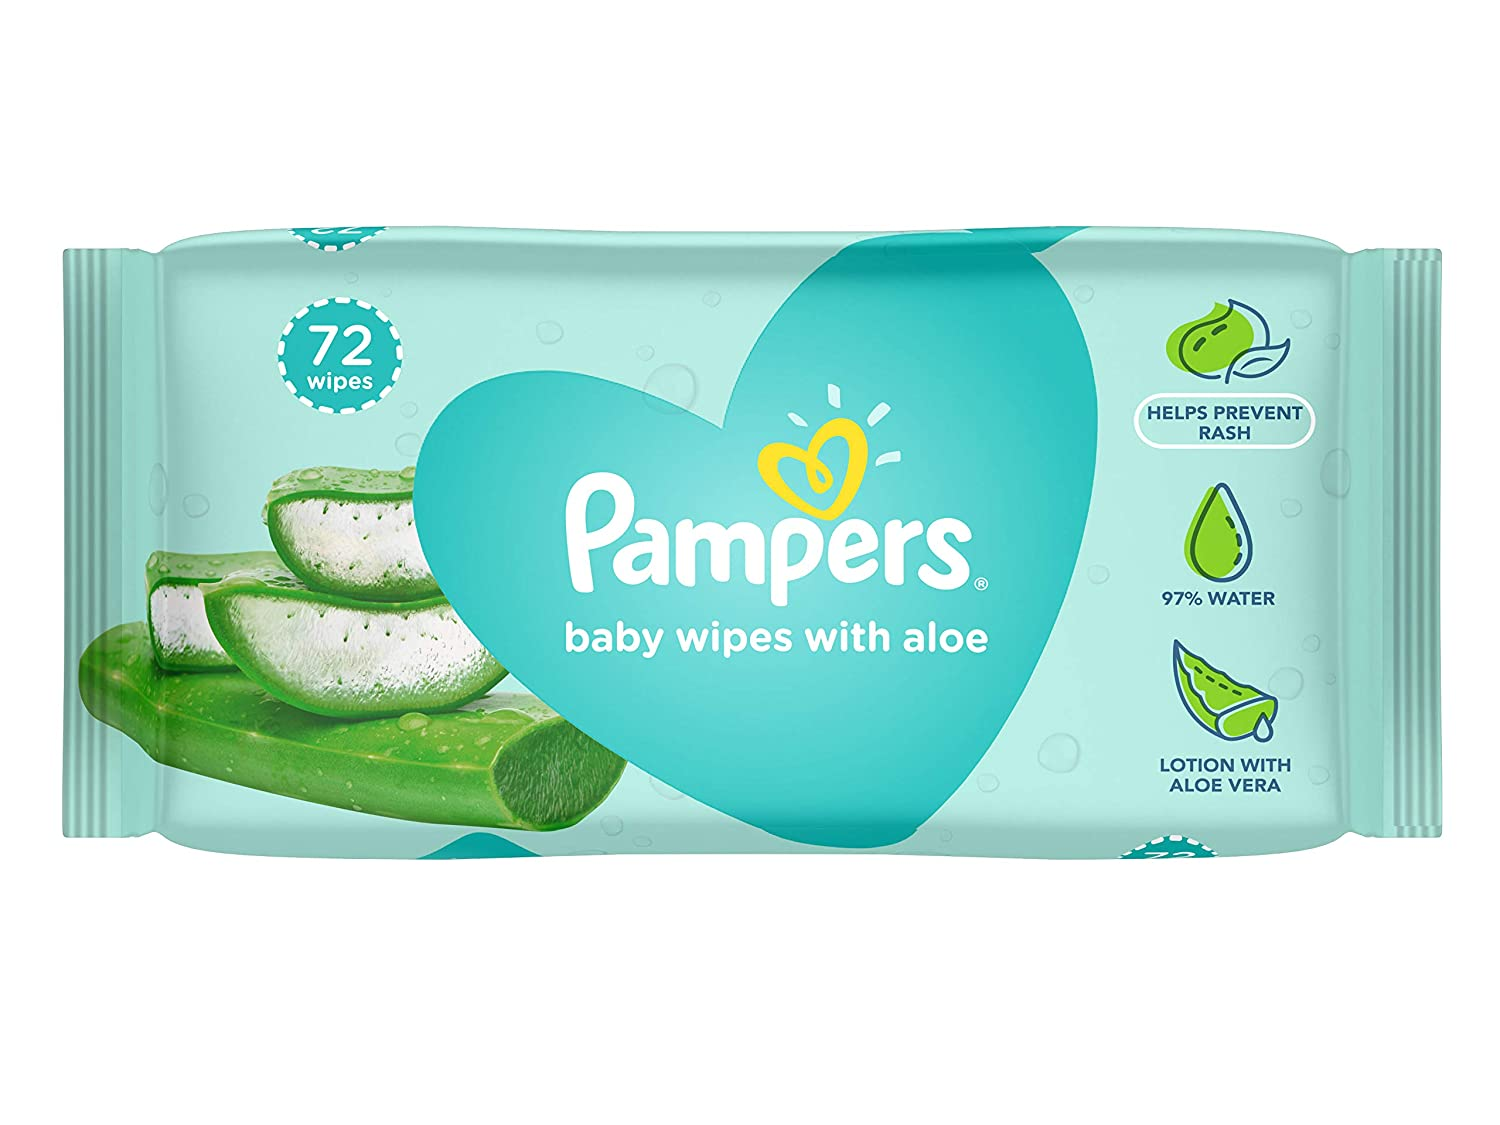 Pampers Aloe Baby Wipes, 72 Count